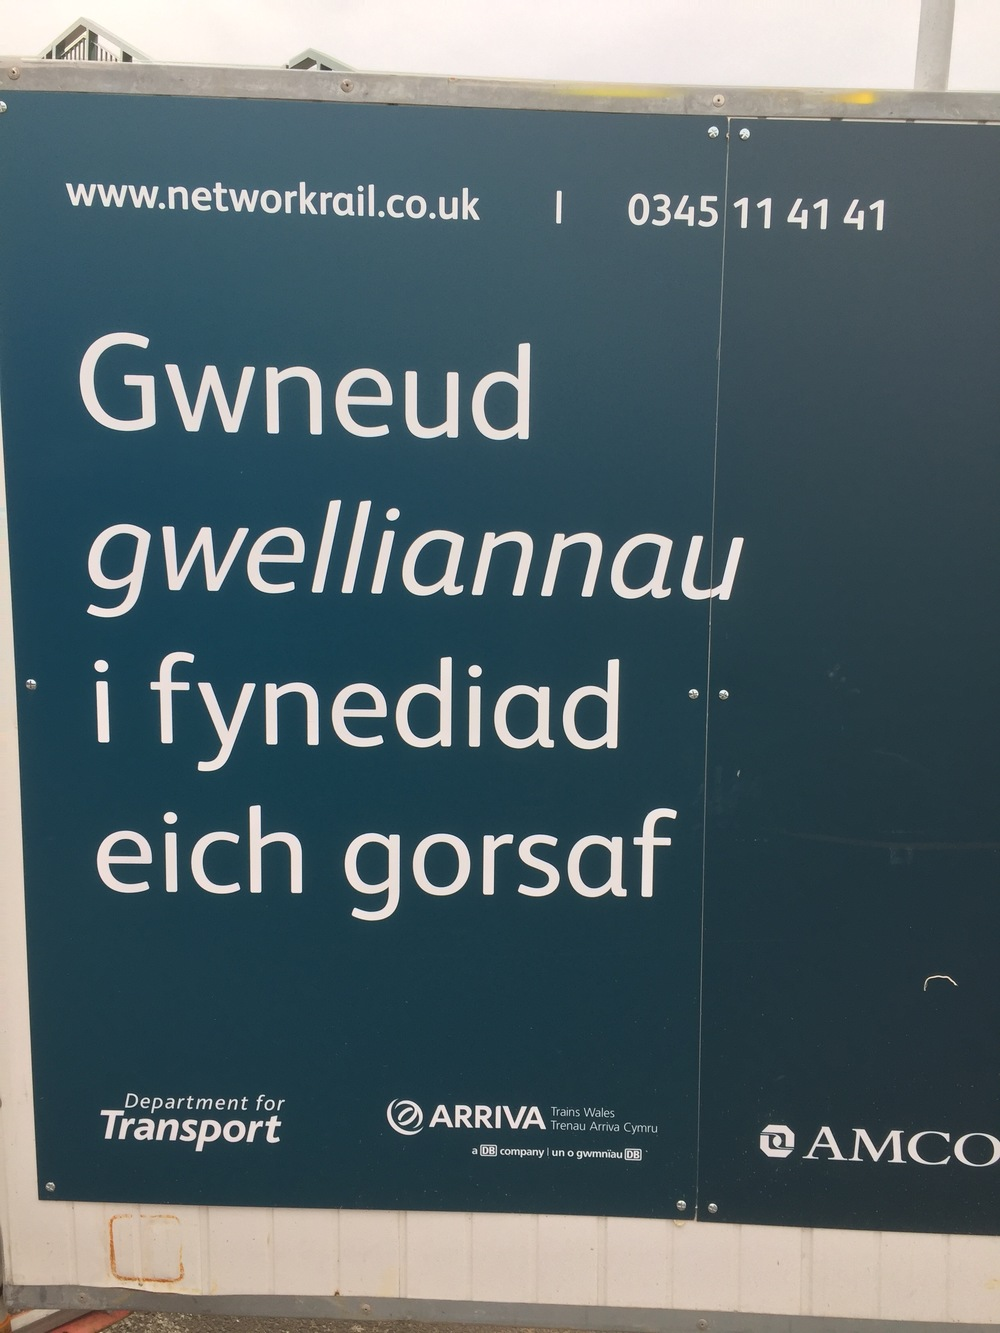 A sign at the train station in Wales. Crazy language!